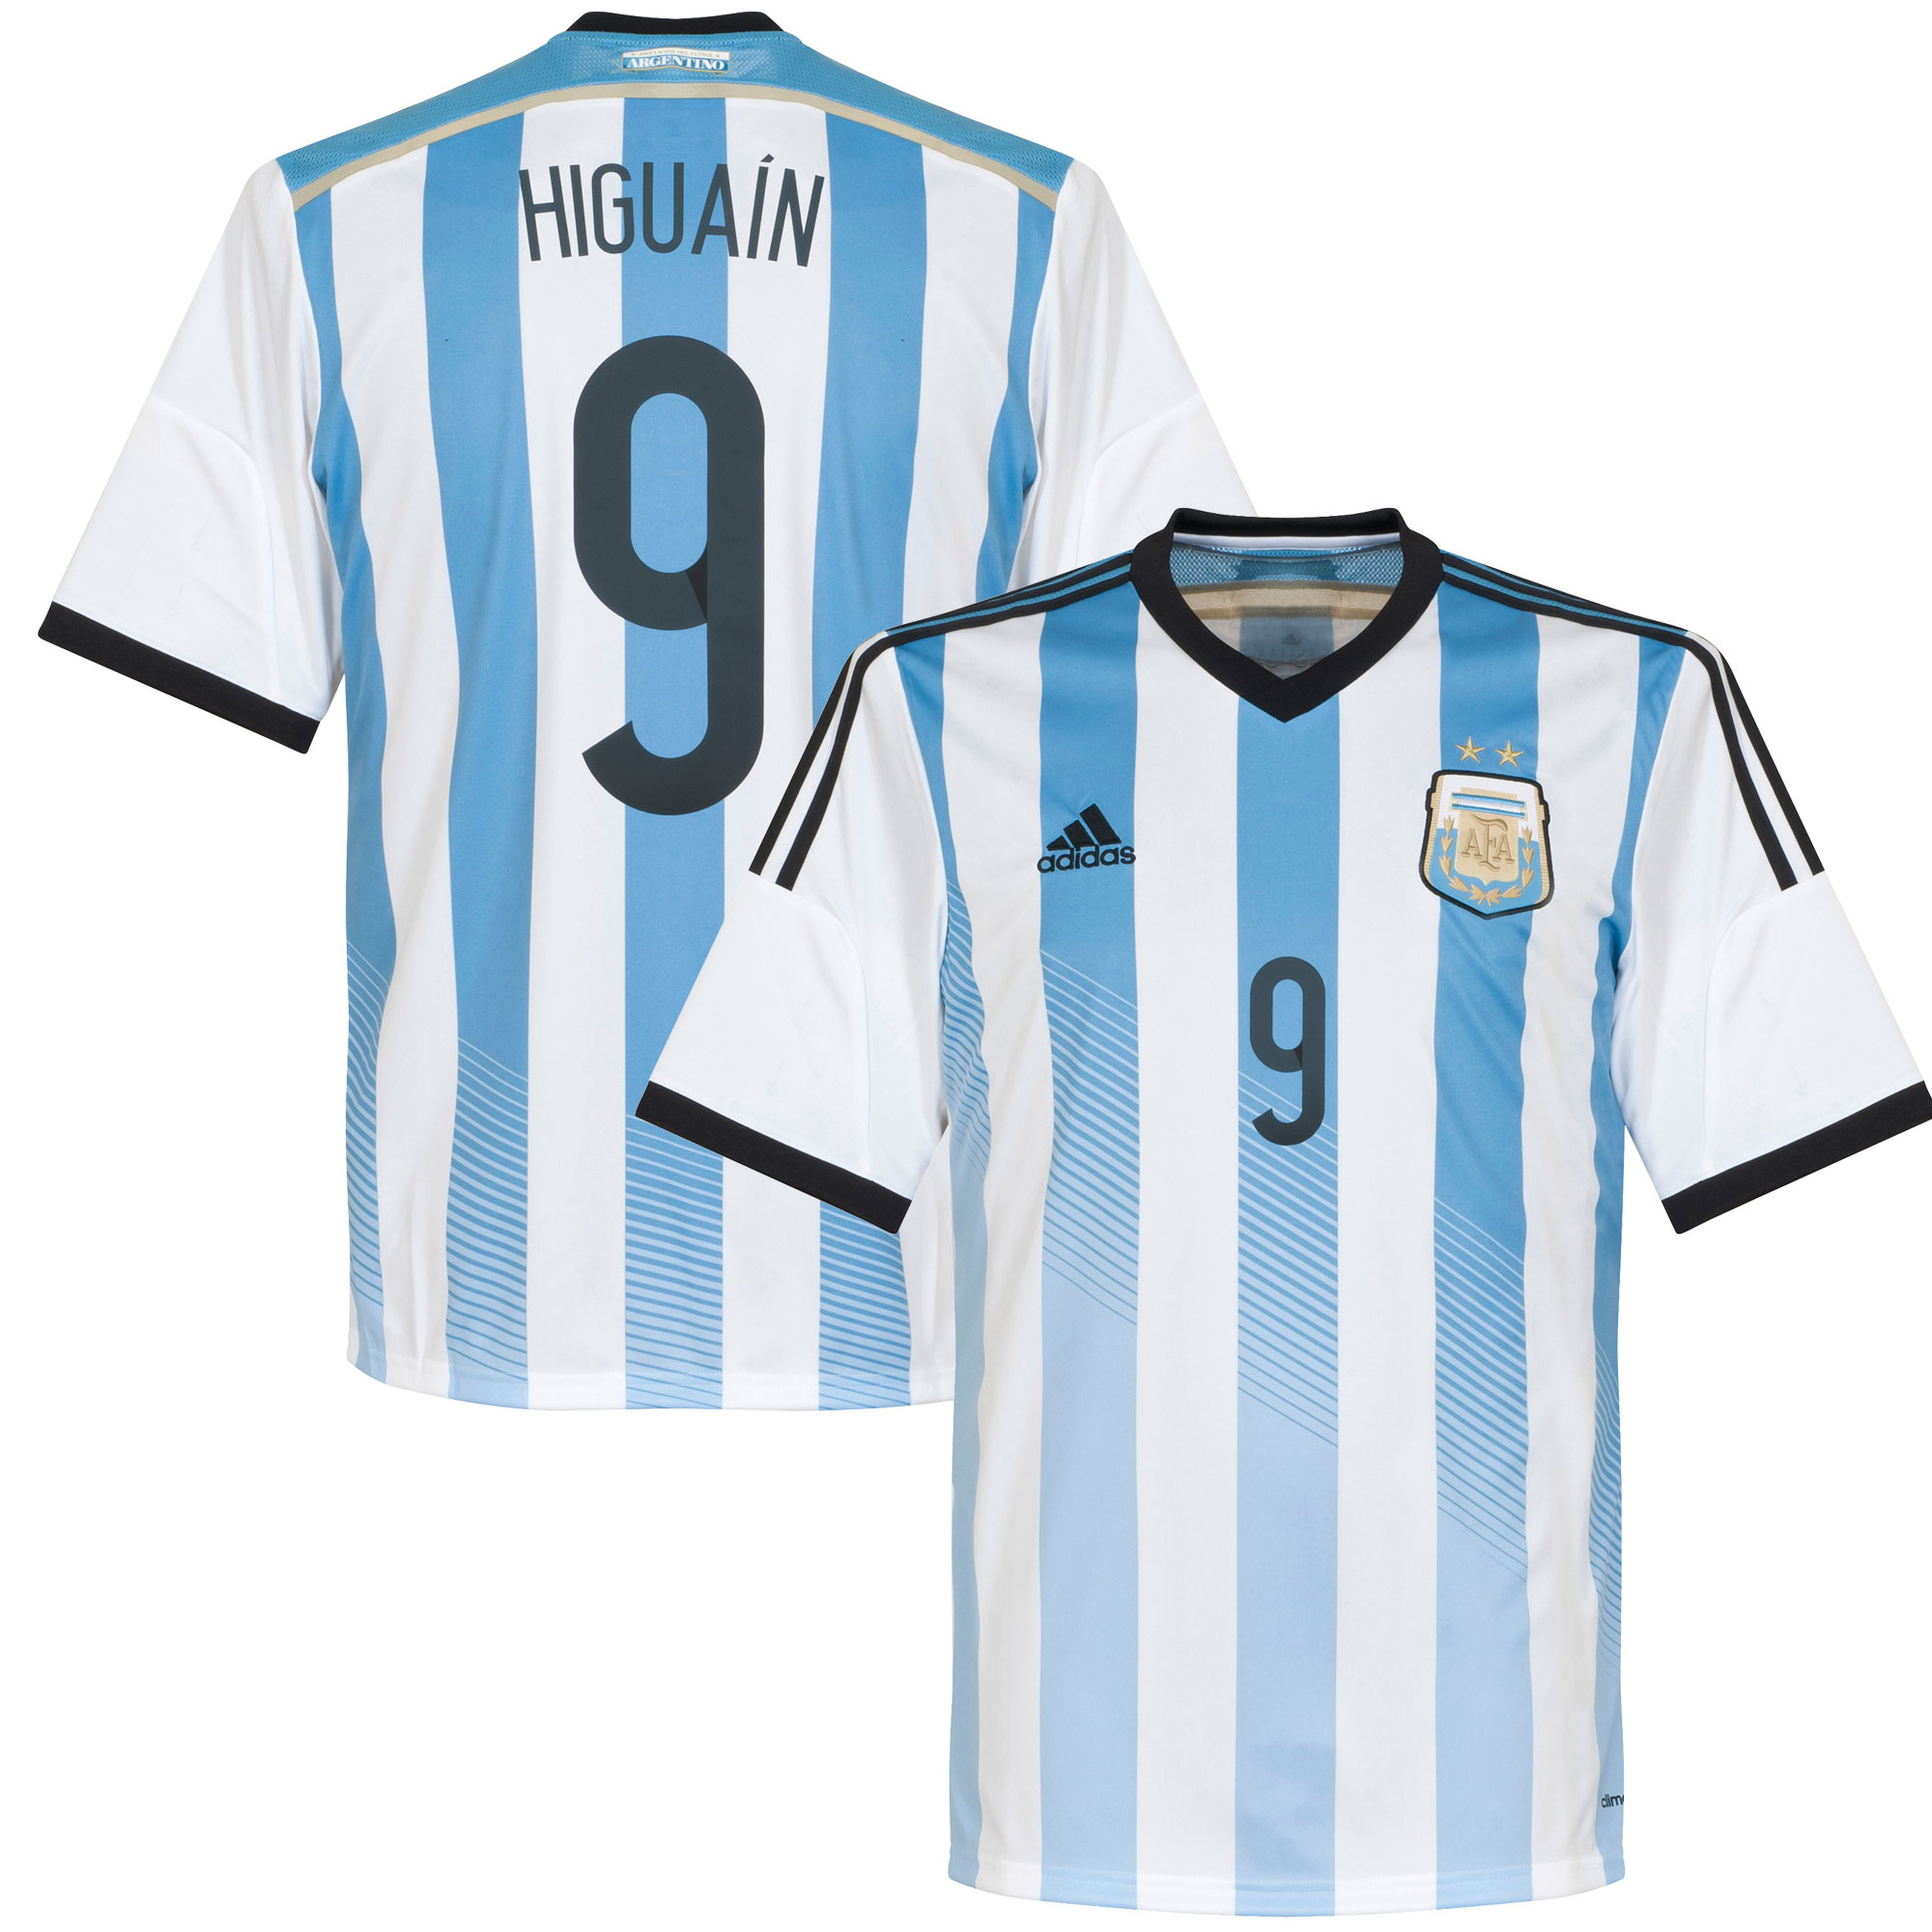 Argentina Home Higuain Jersey 2014 / 2015 - 66